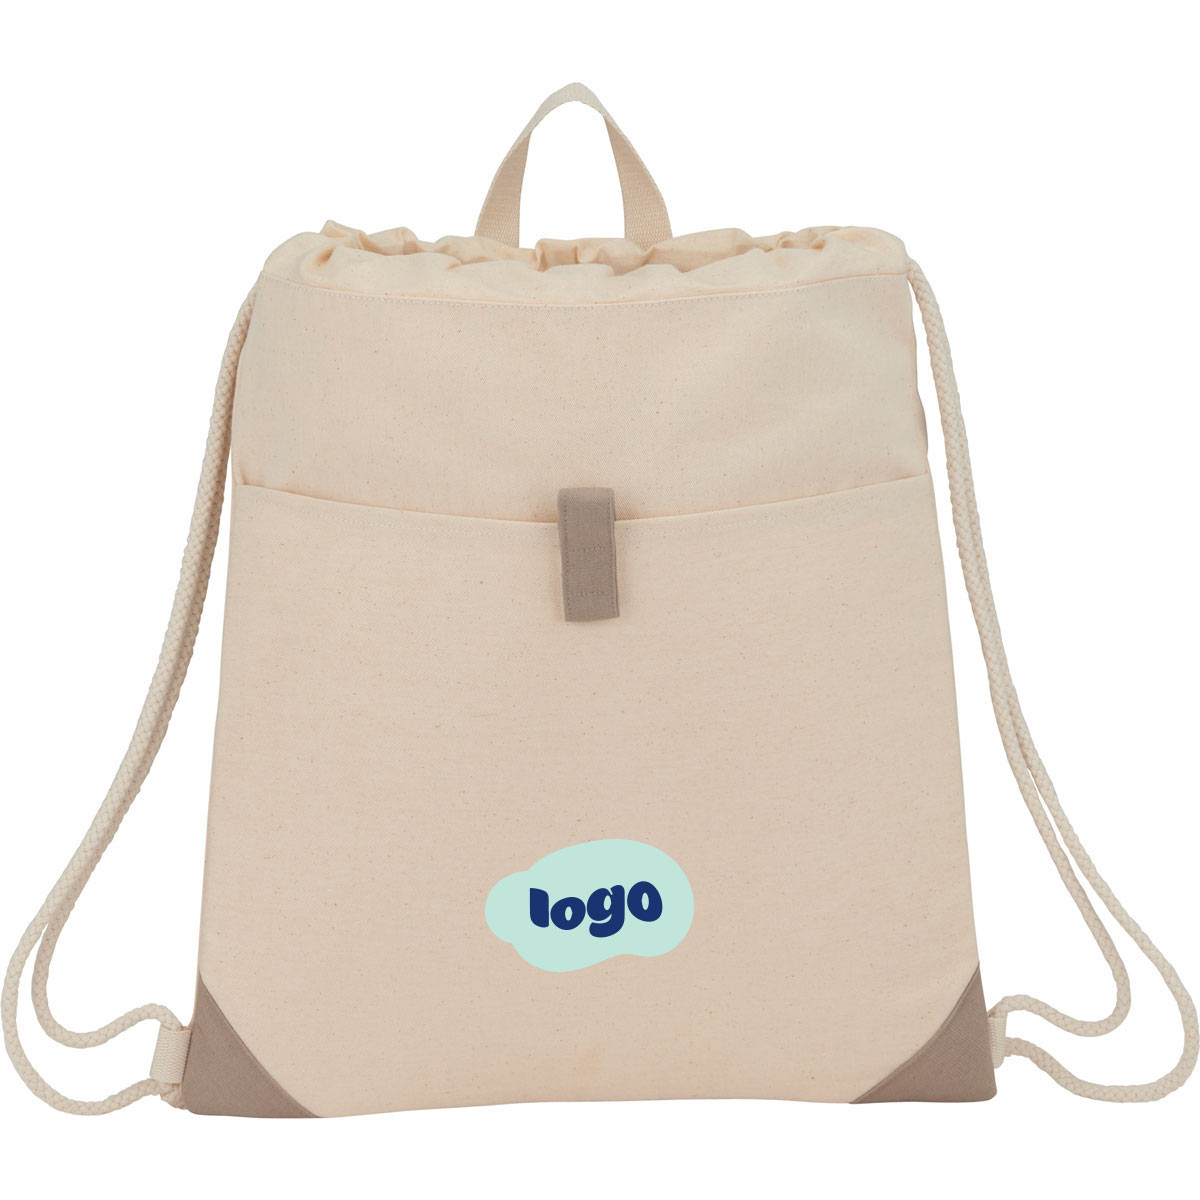 268804 recycled cotton drawstring bag two color heat transfer one location